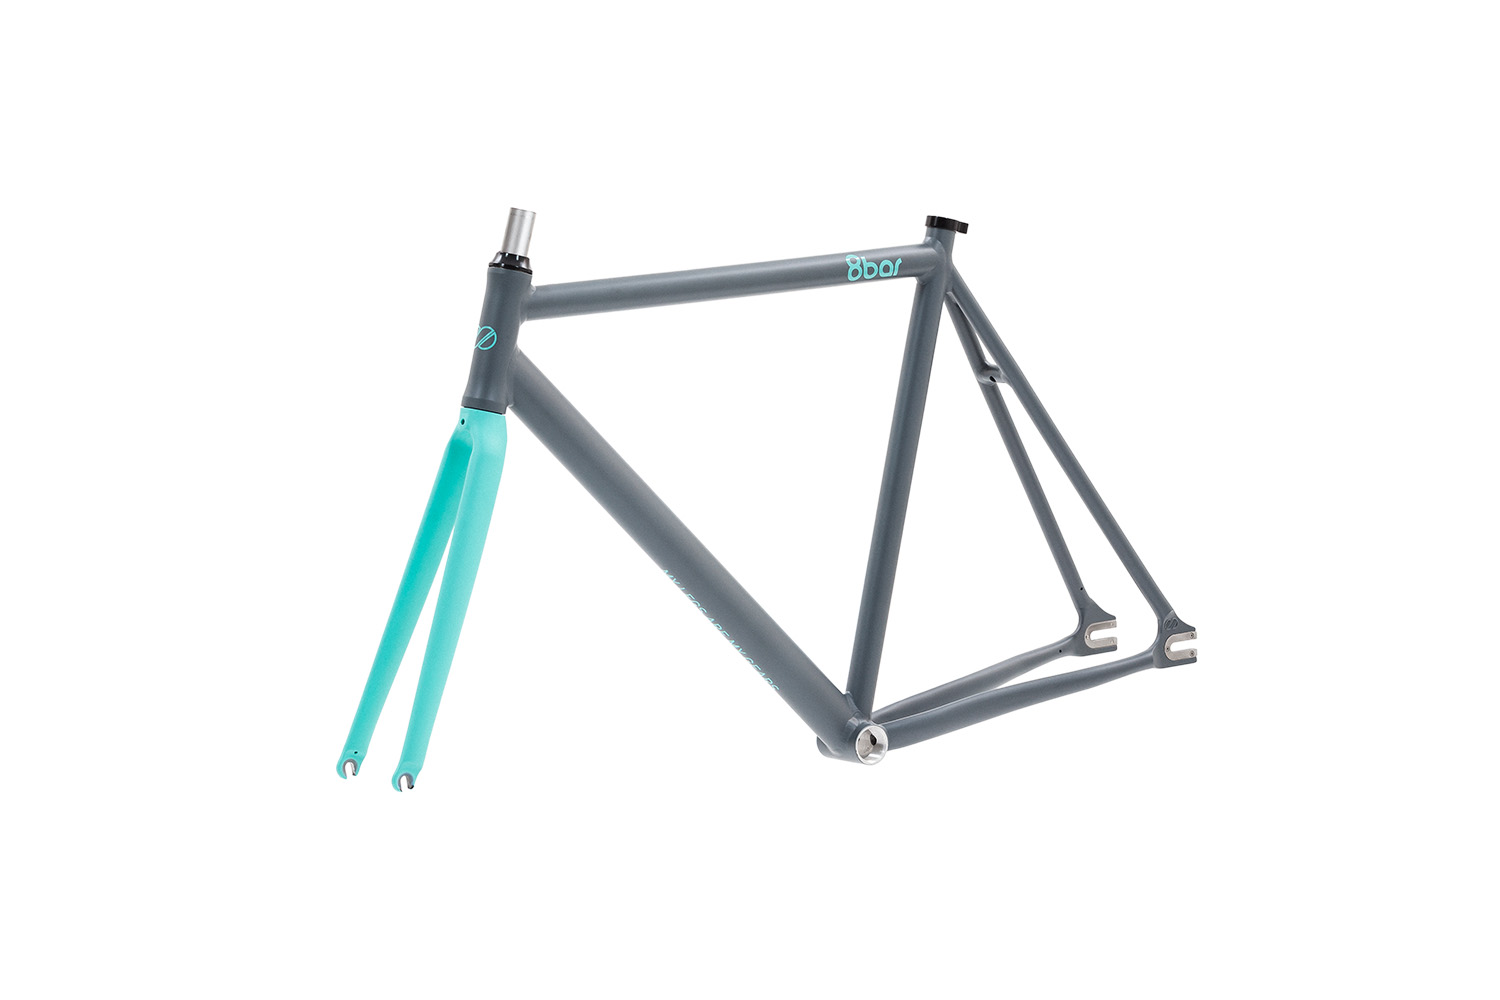 8bar_fhain_custom_framset-fixie-fixed-gear-2